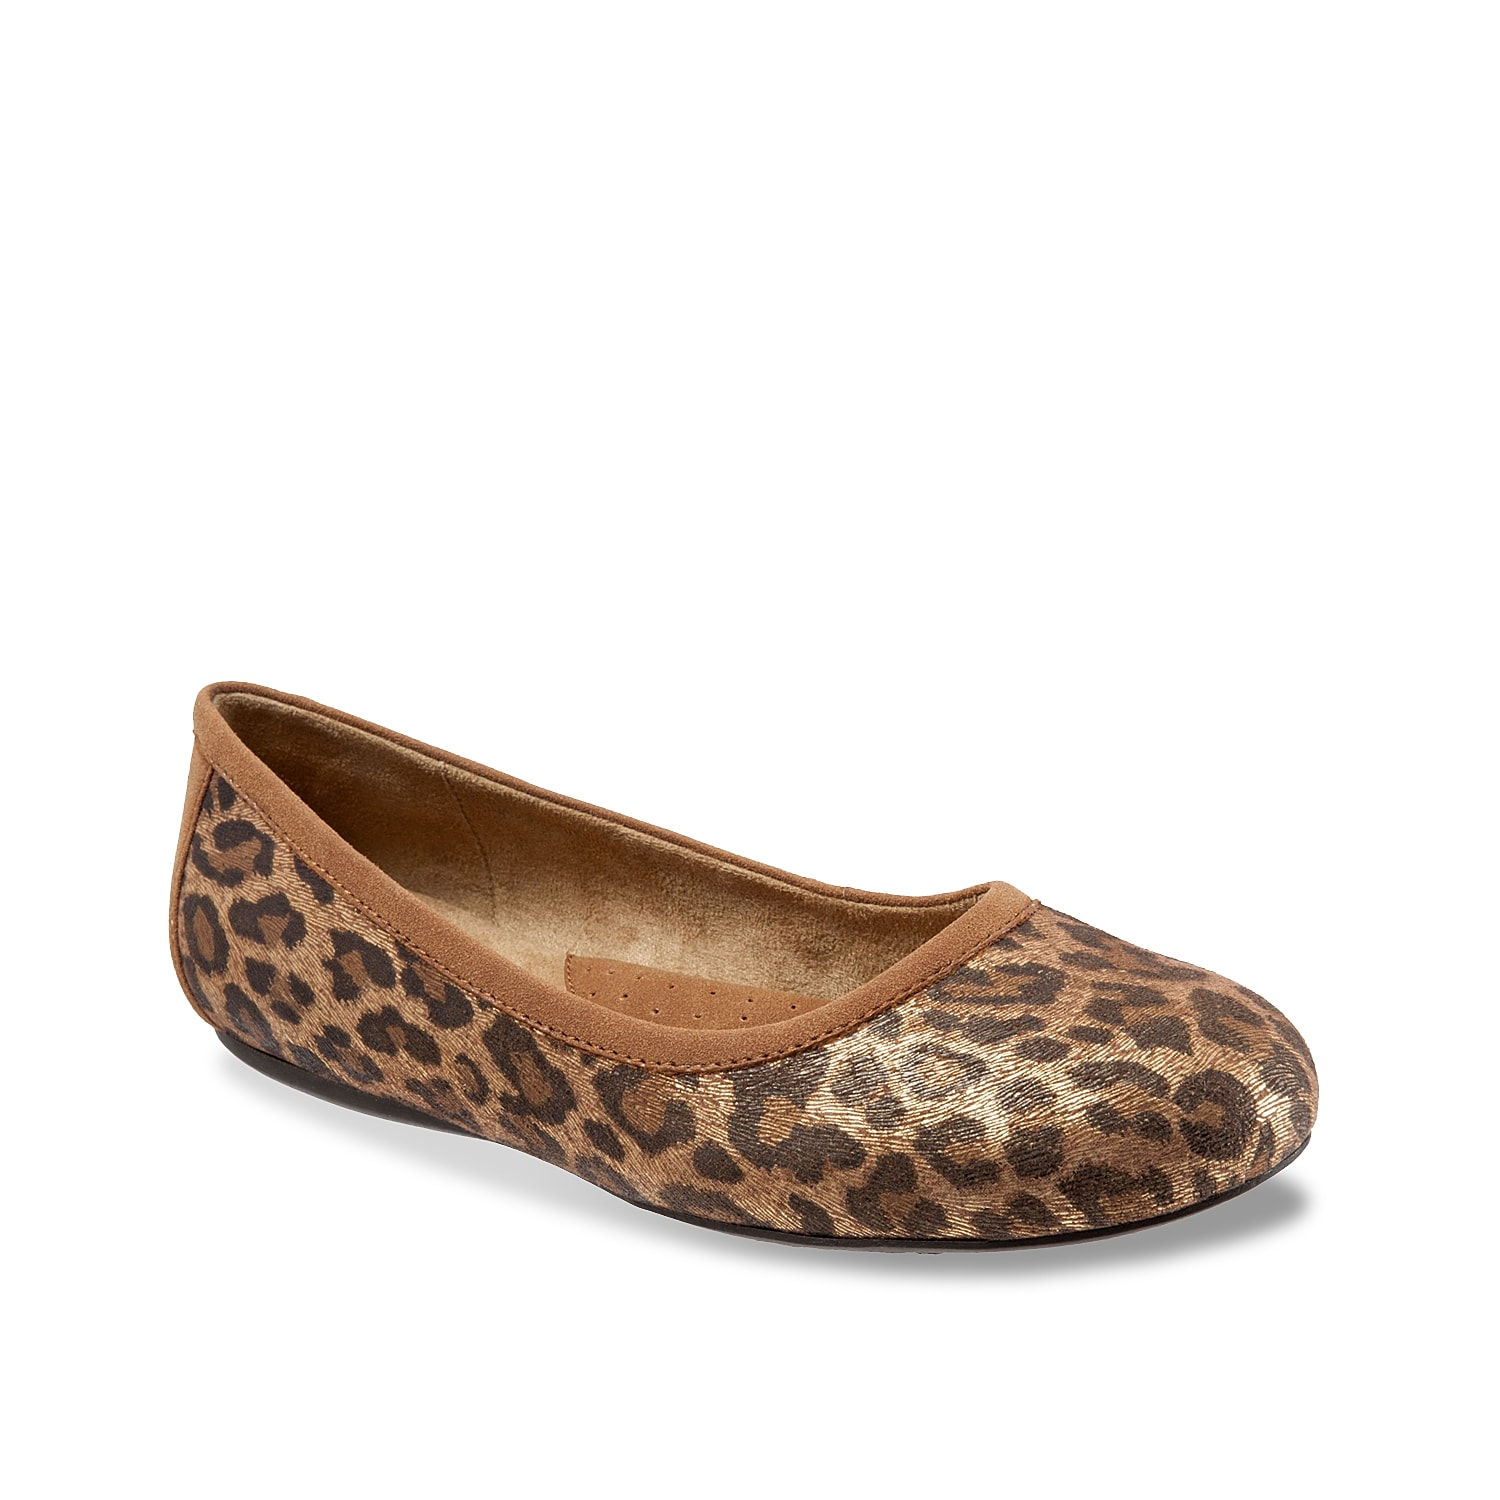 Keep a pair of ballet flats at the front of your closet for endless style transformations! The Softwalk Napa slip-on is fashioned with a simple cap toe for contrasting detail.